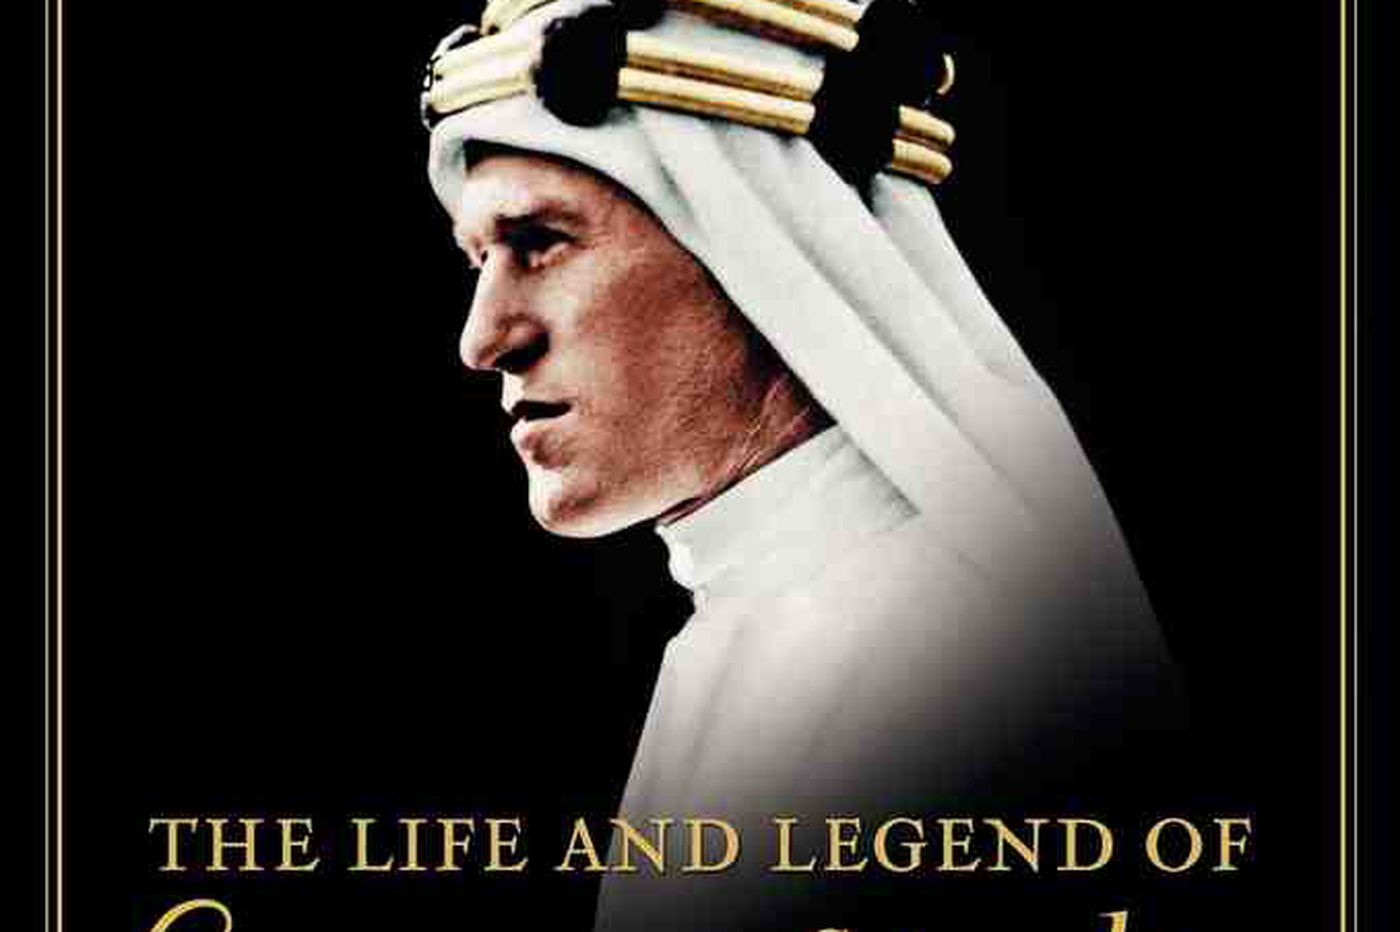 Biography of the brilliant, conflicted 'Lawrence of Arabia'